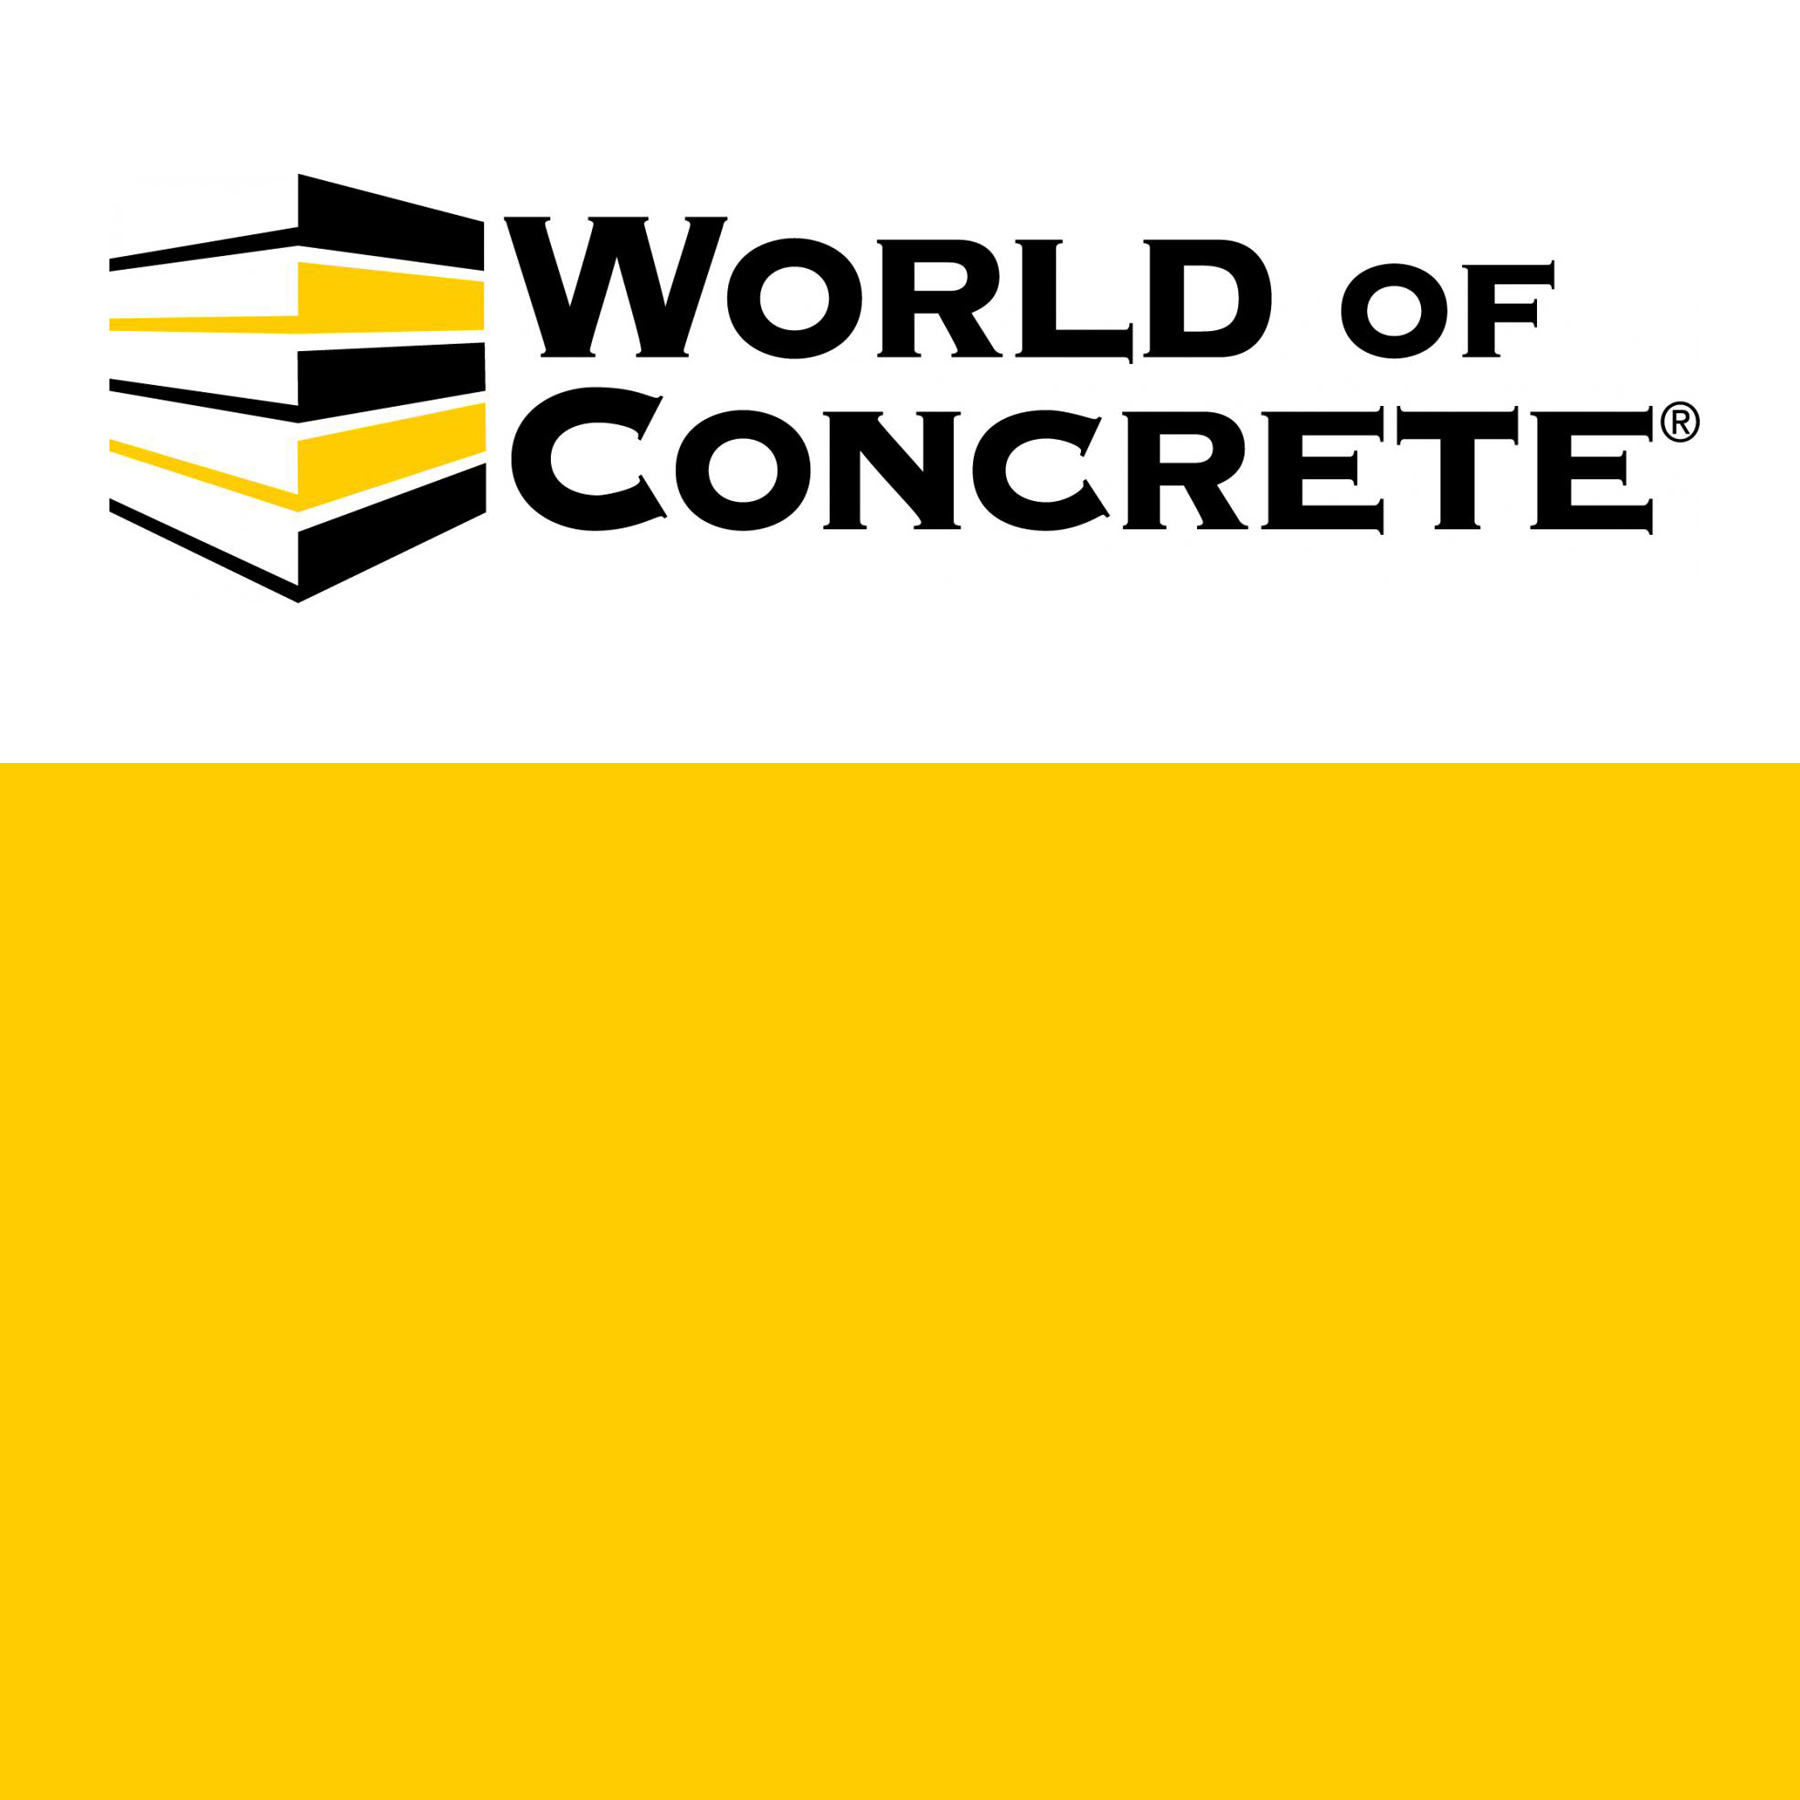 Thanks for your time to visit our booth at the World of Concrete show2020